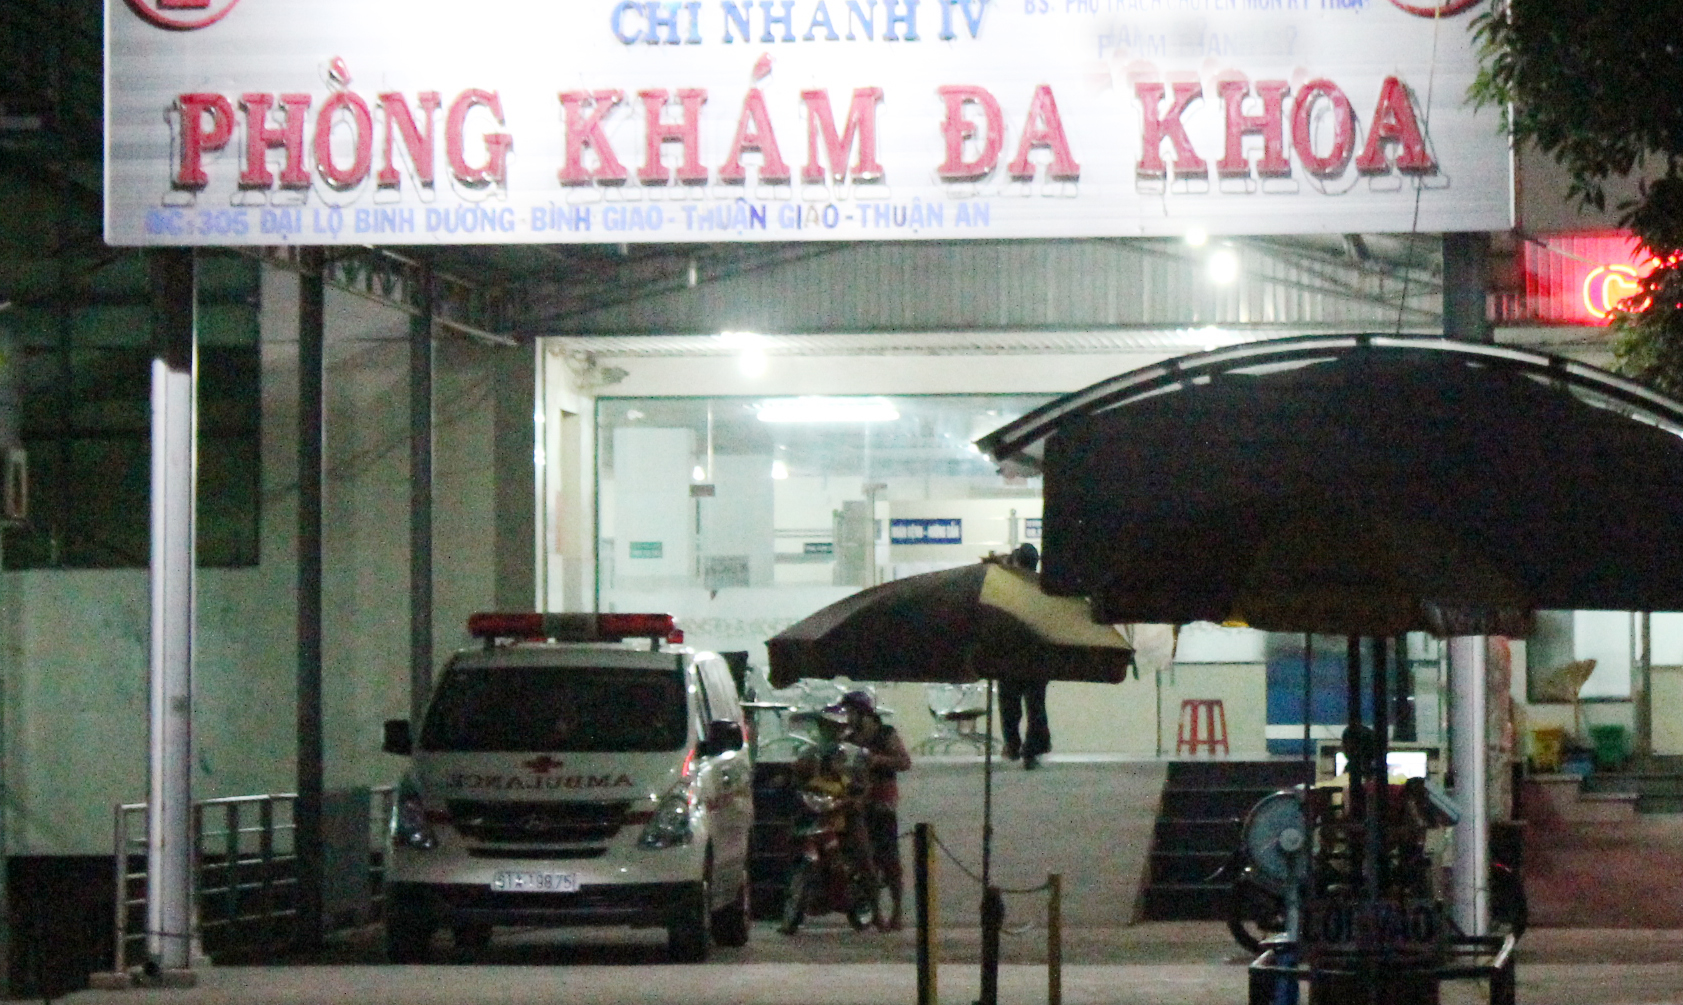 Doctor at private clinic in Binh Duong accused of raping patient